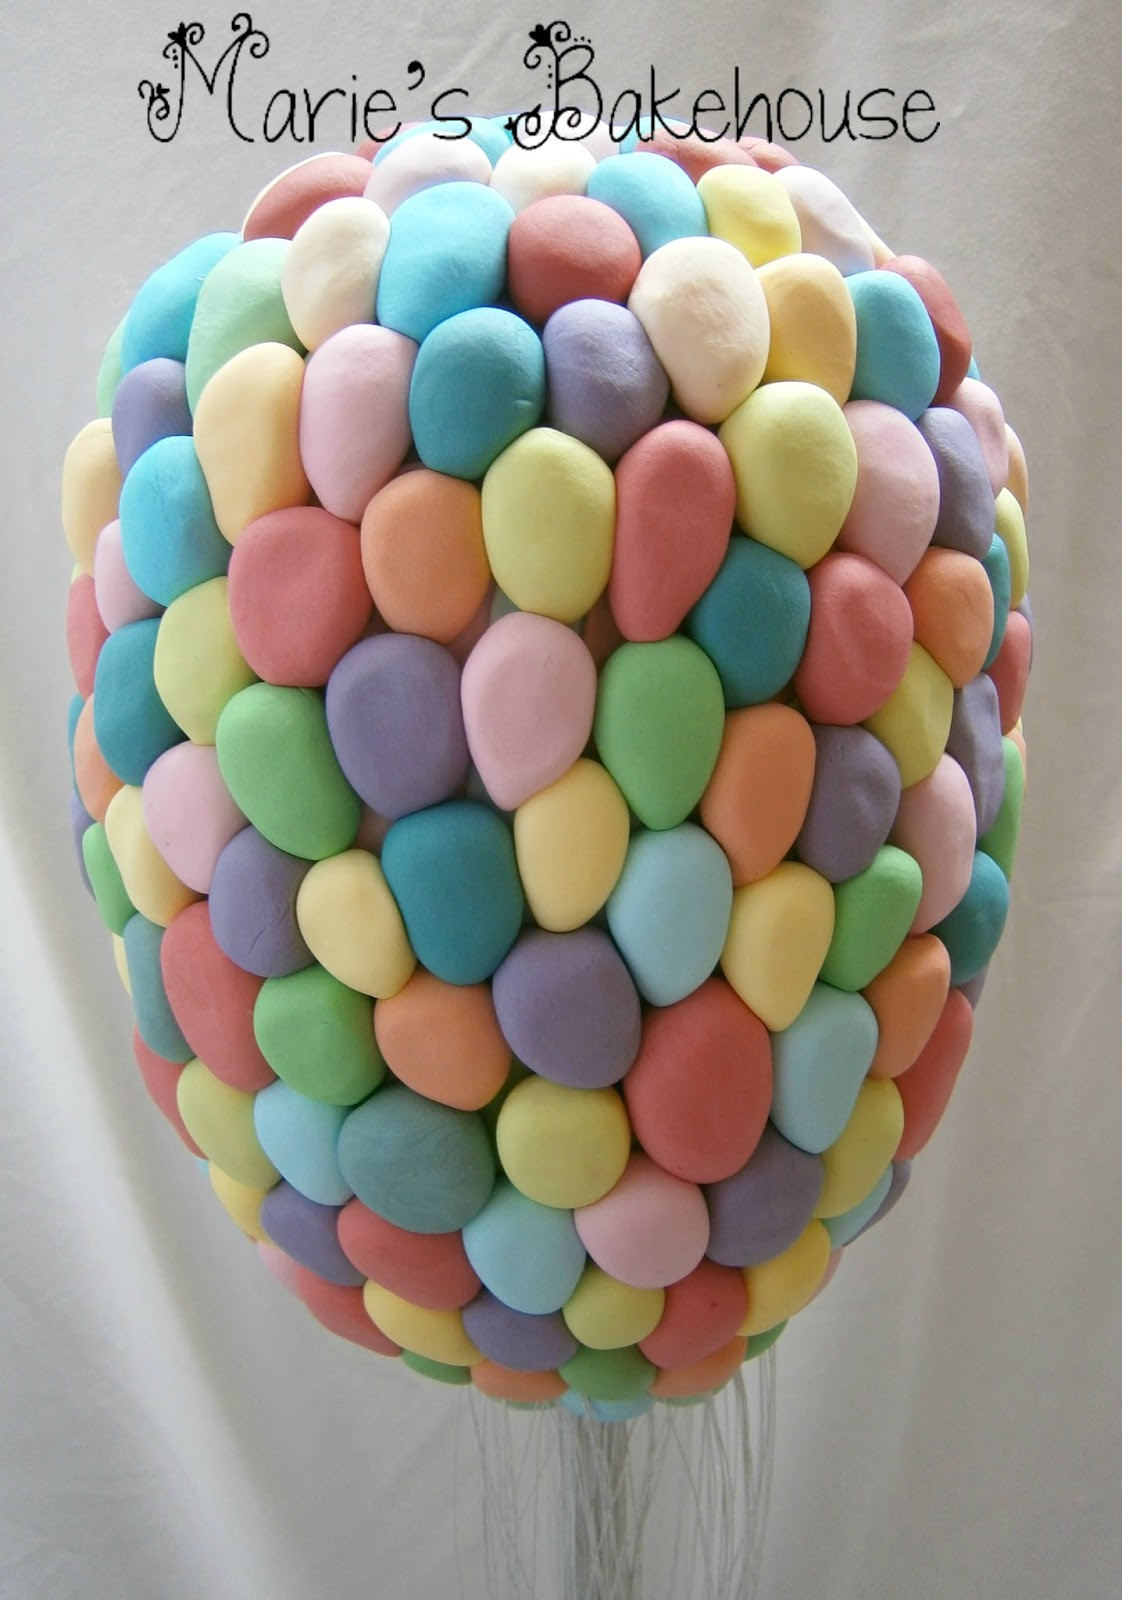 Up House Balloons Maries Bakehouse How To Make A Floating Up House Cake Part 3